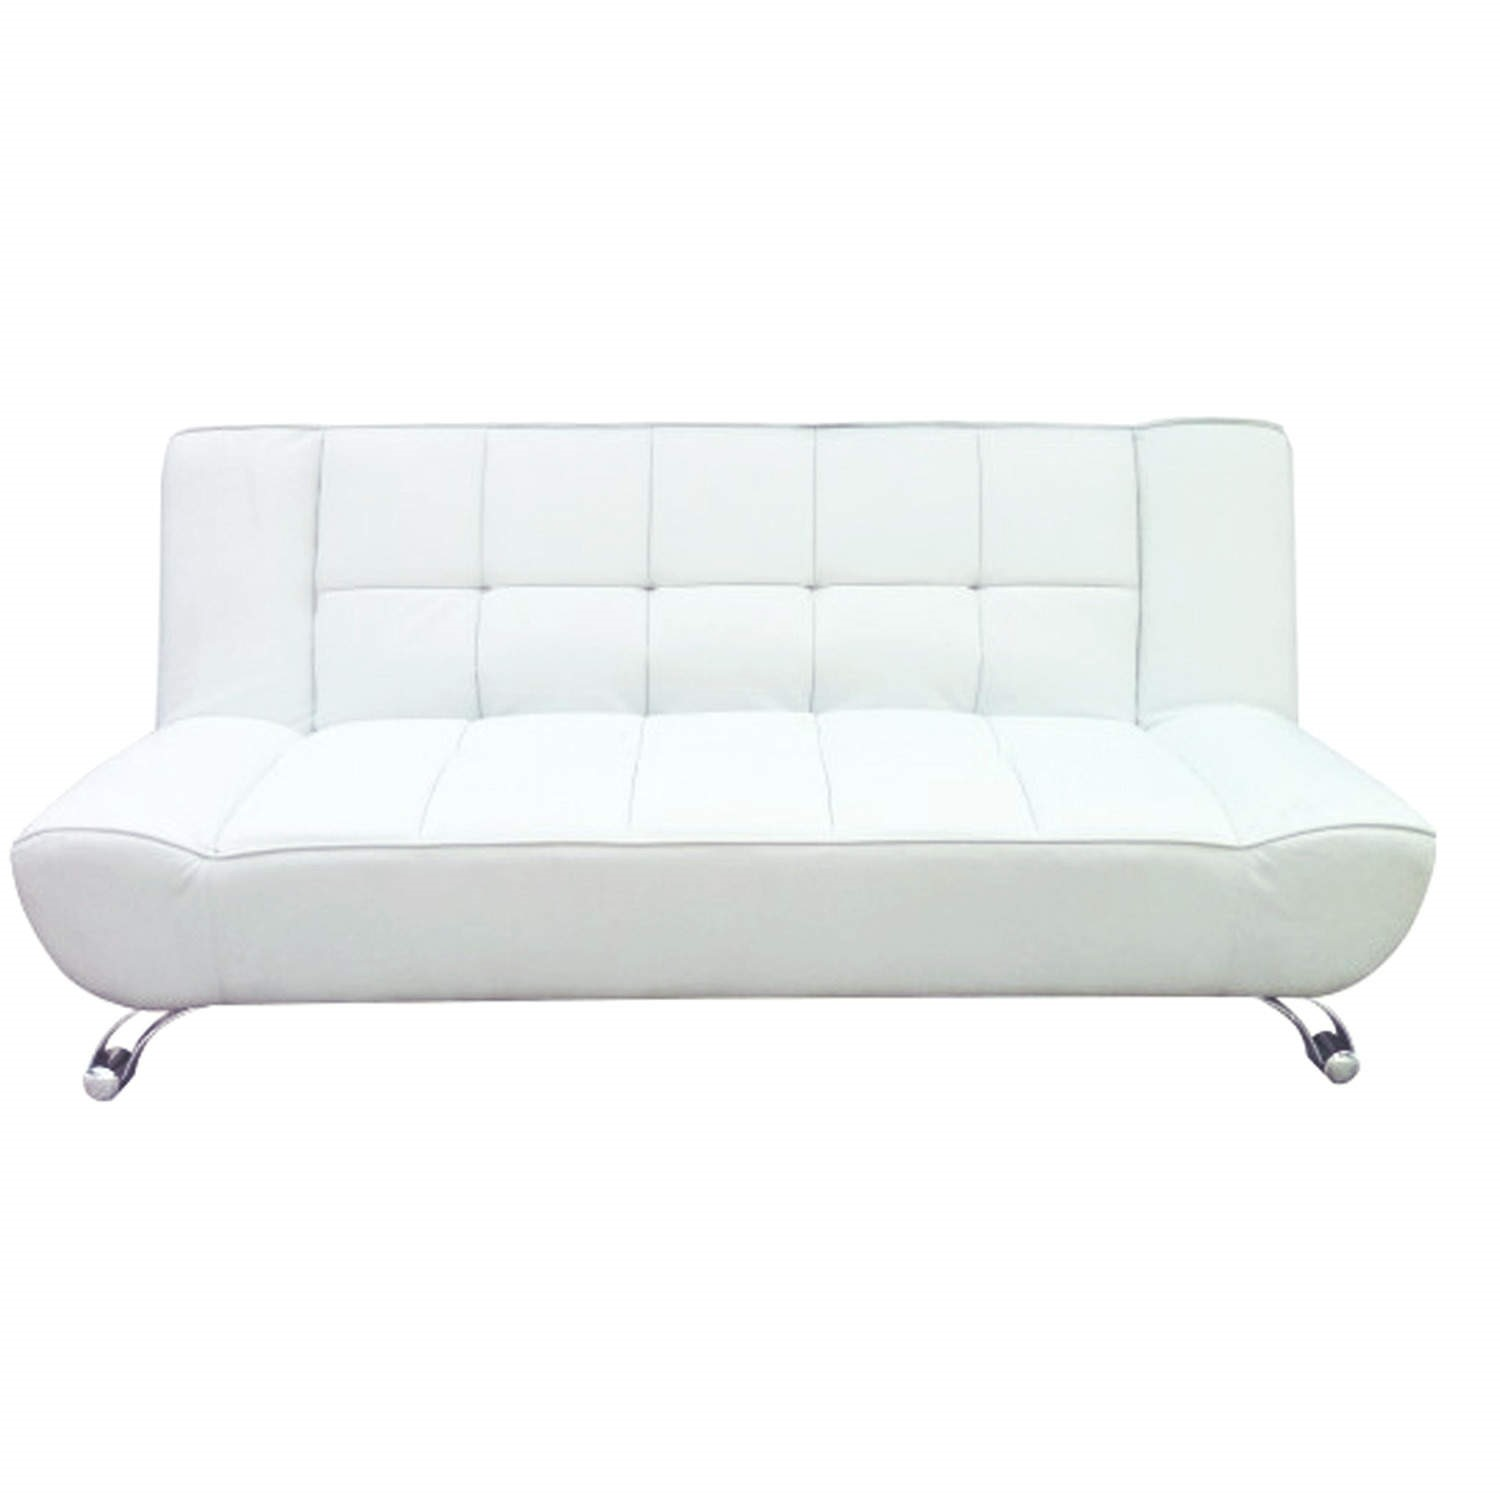 Clearance   Vogue Leather Sofa Bed in White   Moderate Cosmetic